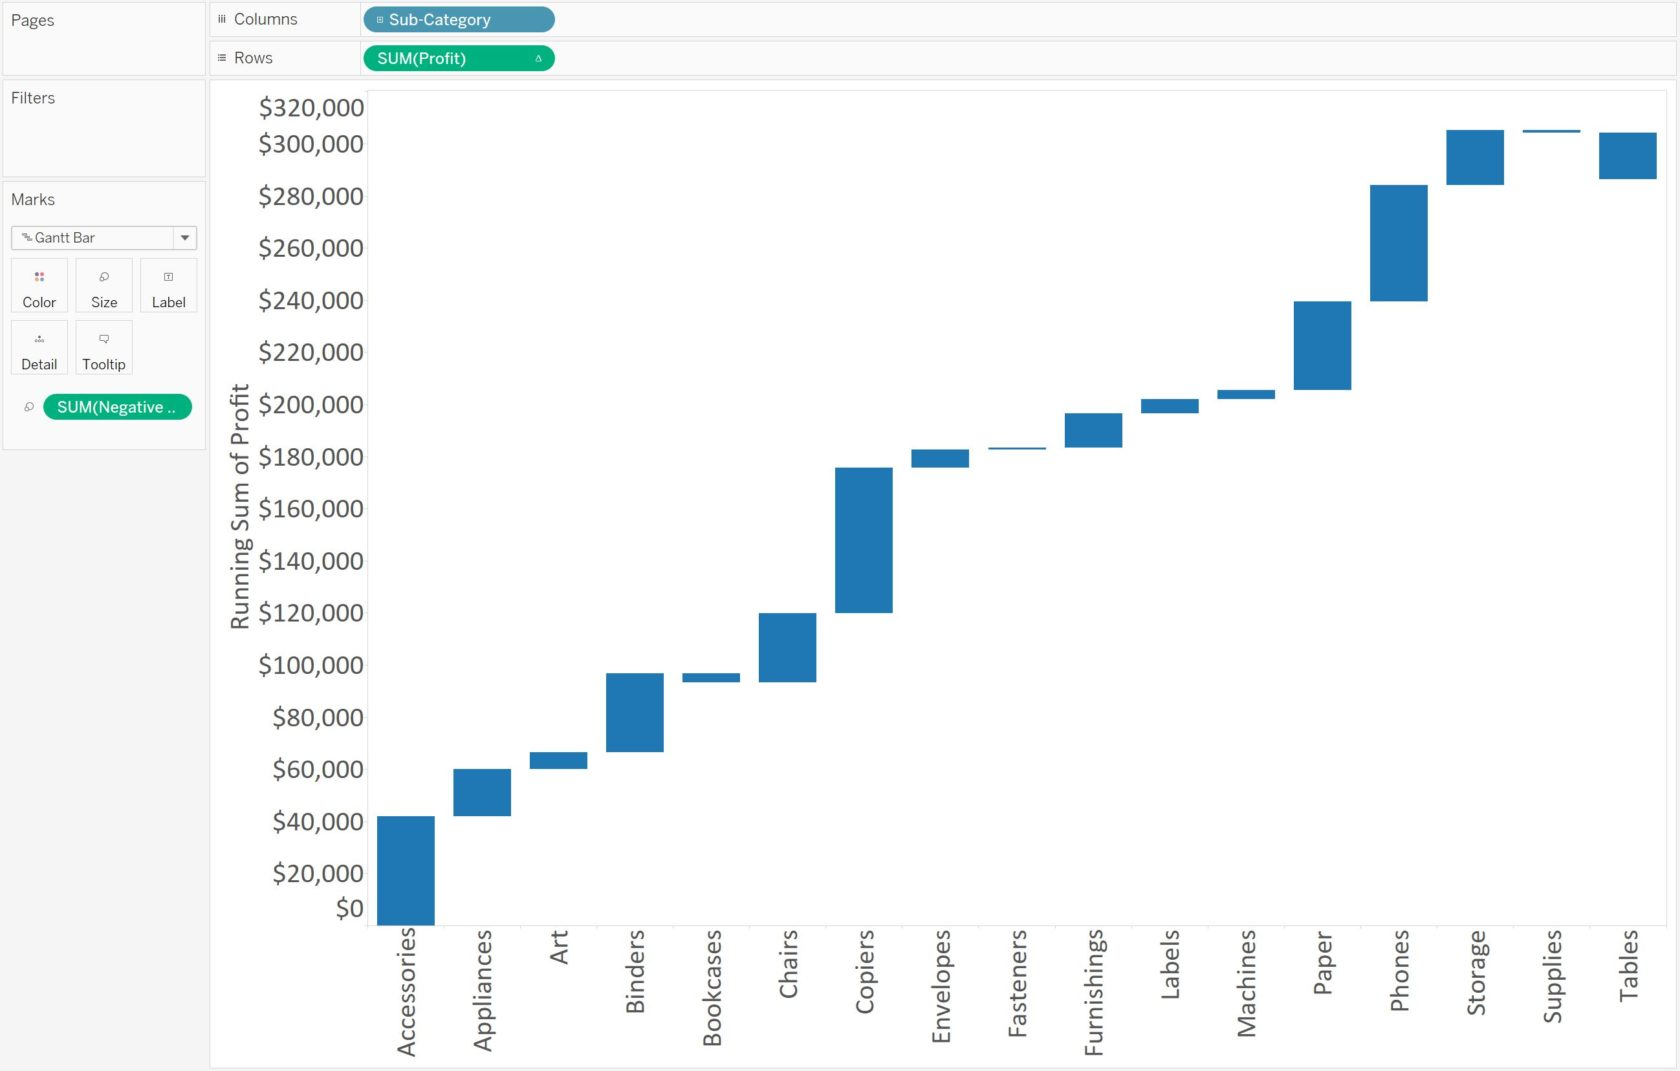 Tableau 201 how to make a waterfall chart evolytics tableau waterfall chart profit by sub category ccuart Gallery